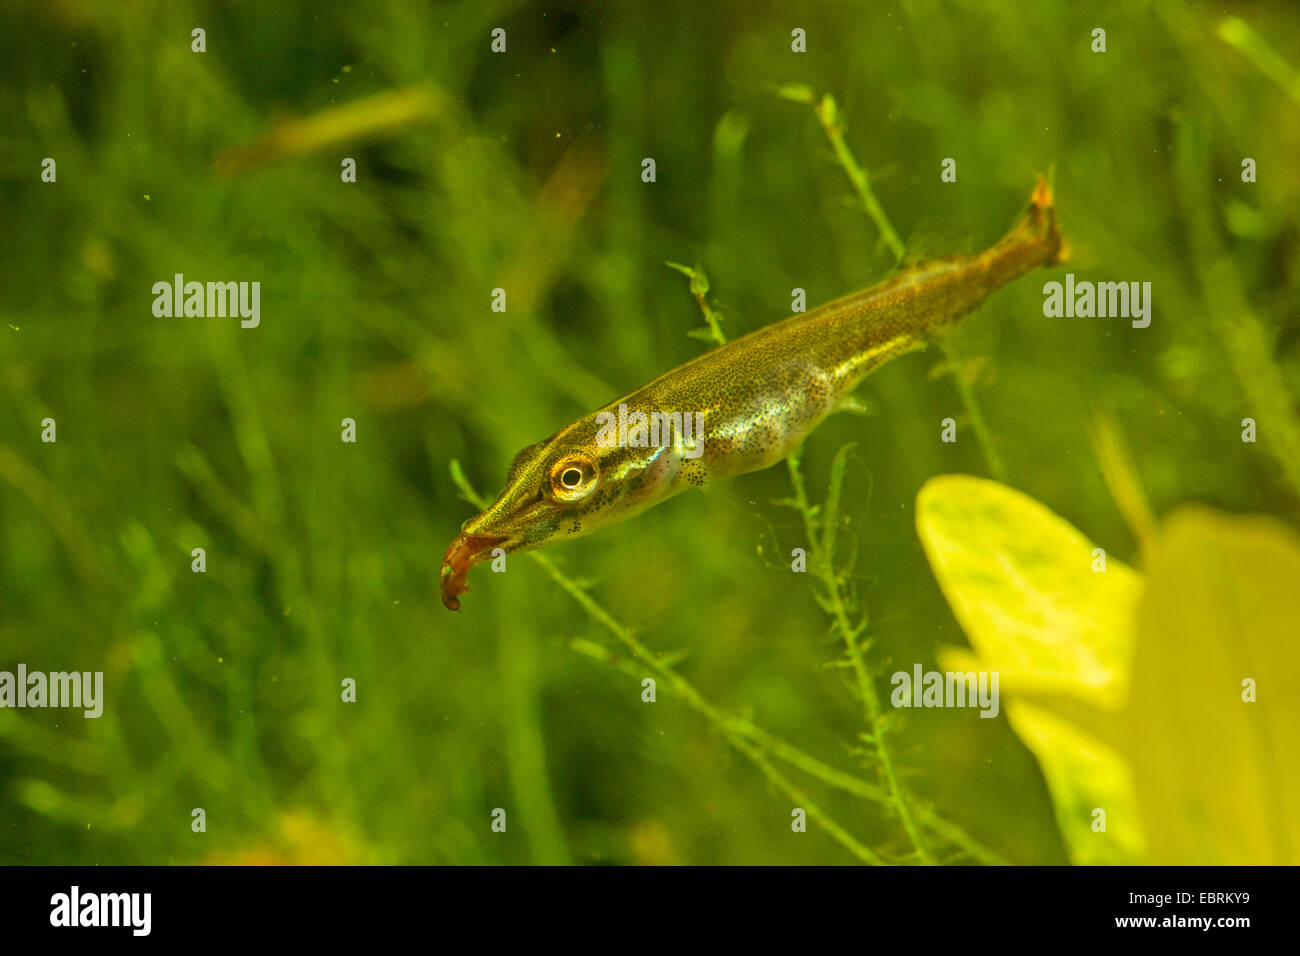 pike, northern pike (Esox lucius), juvenile eating a mosquito larva, Germany - Stock Image